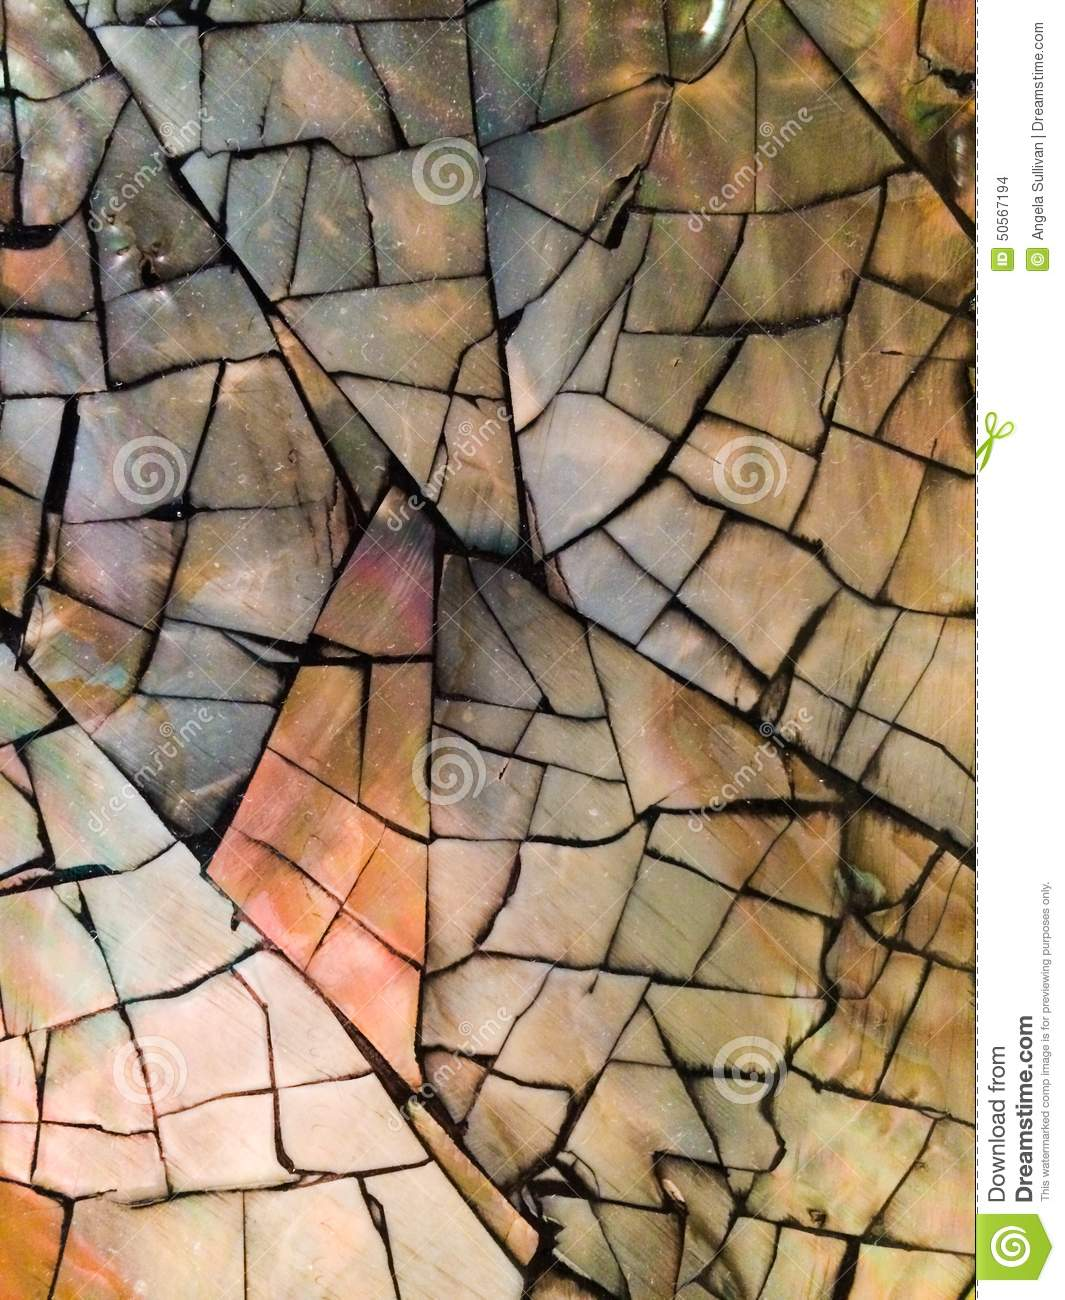 Grout Mosaic Tile Mother Of Pearl Mosaic Stock Photo Image 50567194